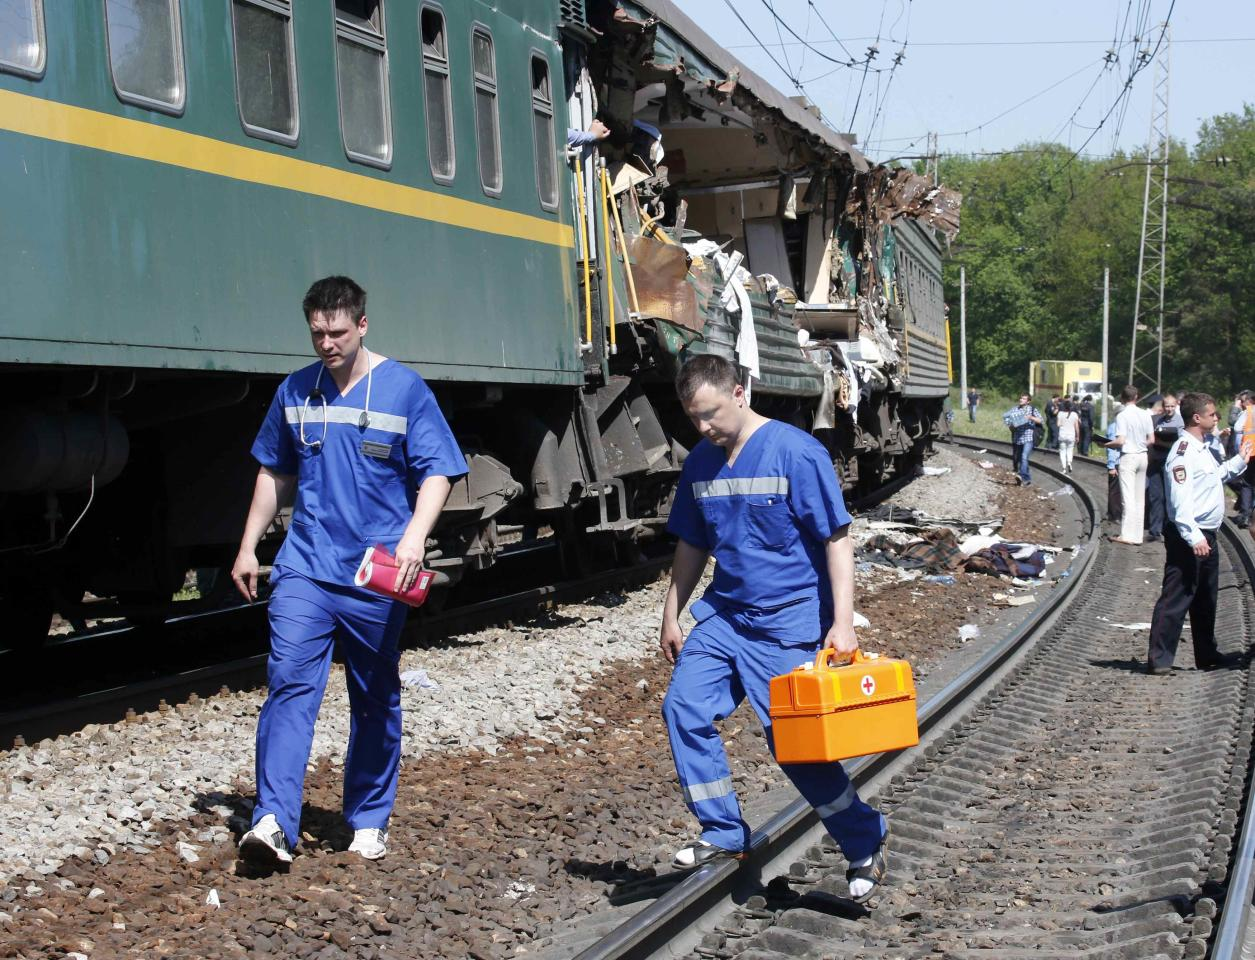 Medical personnel walk near a passenger train damaged in a collision with a freight train in Moscow region May 20, 2014. A passenger train on its way to Moldova collided with a freight train near Moscow on Tuesday, killing at least four people and injuring 15, a spokeswoman for Russia's Emergencies Ministry said. The reason for the collision, near the town of Naro-Fominsk 55 km (34 miles) southwest of Moscow, was not immediately clear. REUTERS/Grigory Dukor (RUSSIA - Tags: DISASTER TRANSPORT)